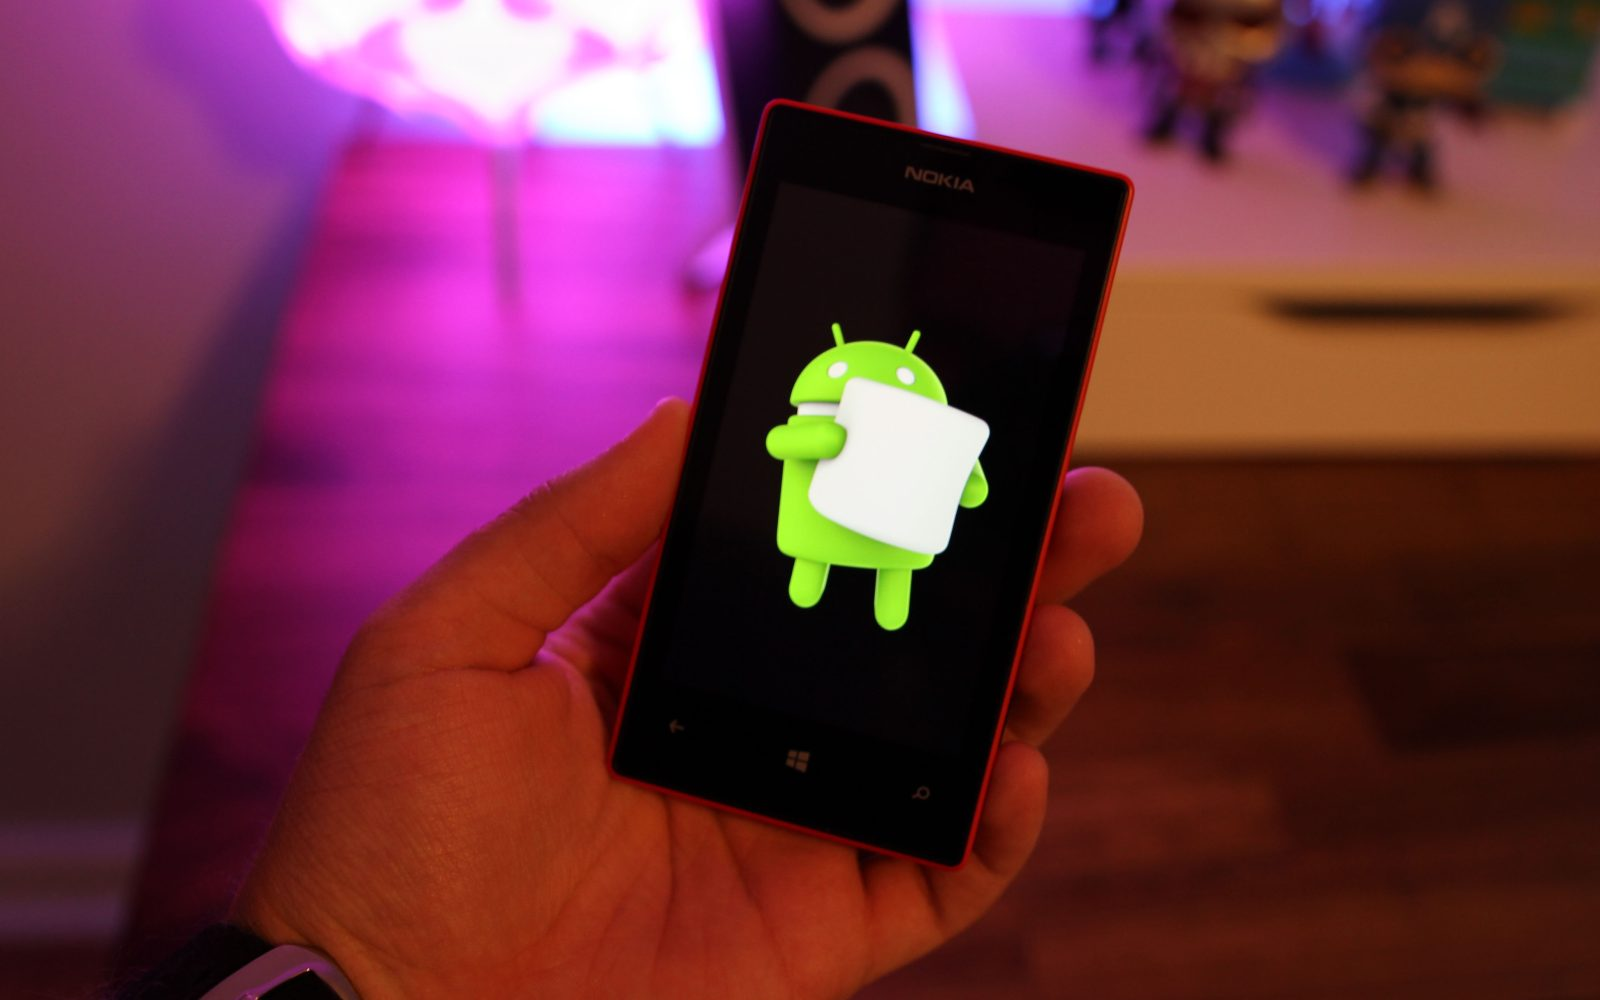 XDA developer working on porting Android to the Windows